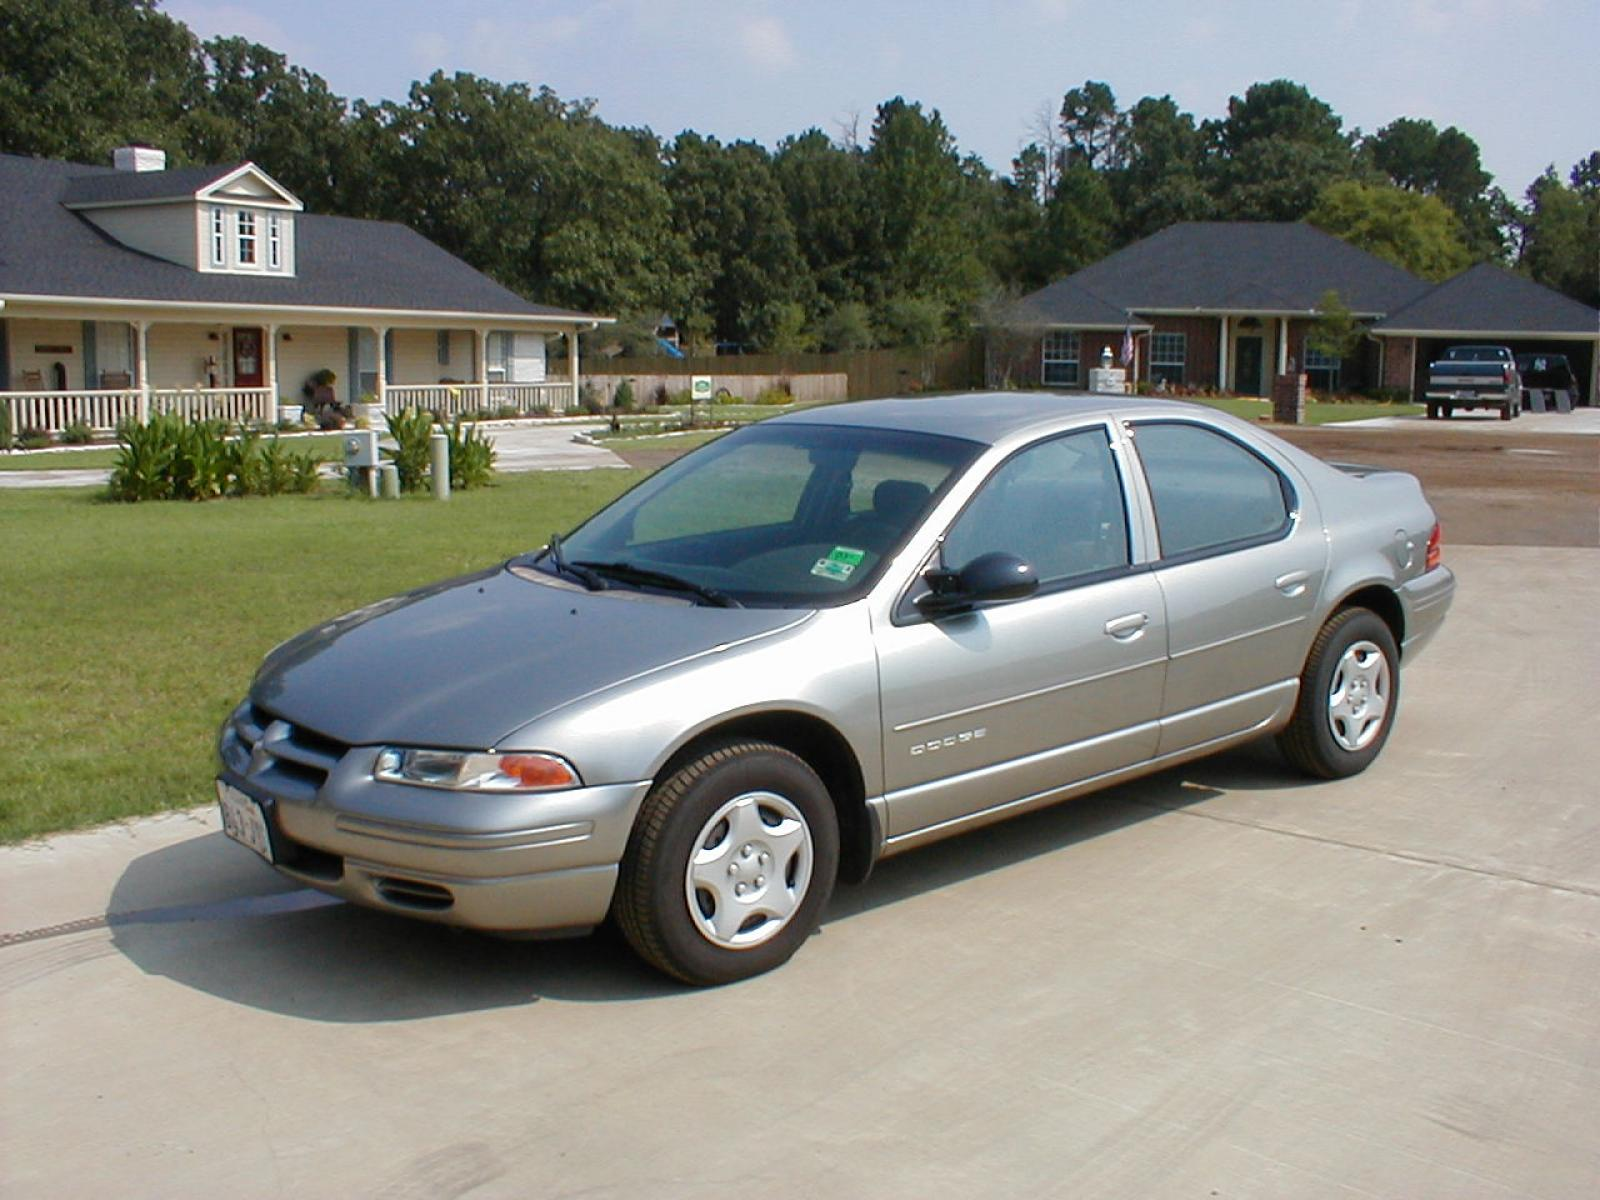 1995 dodge stratus information and photos zombiedrive. Black Bedroom Furniture Sets. Home Design Ideas